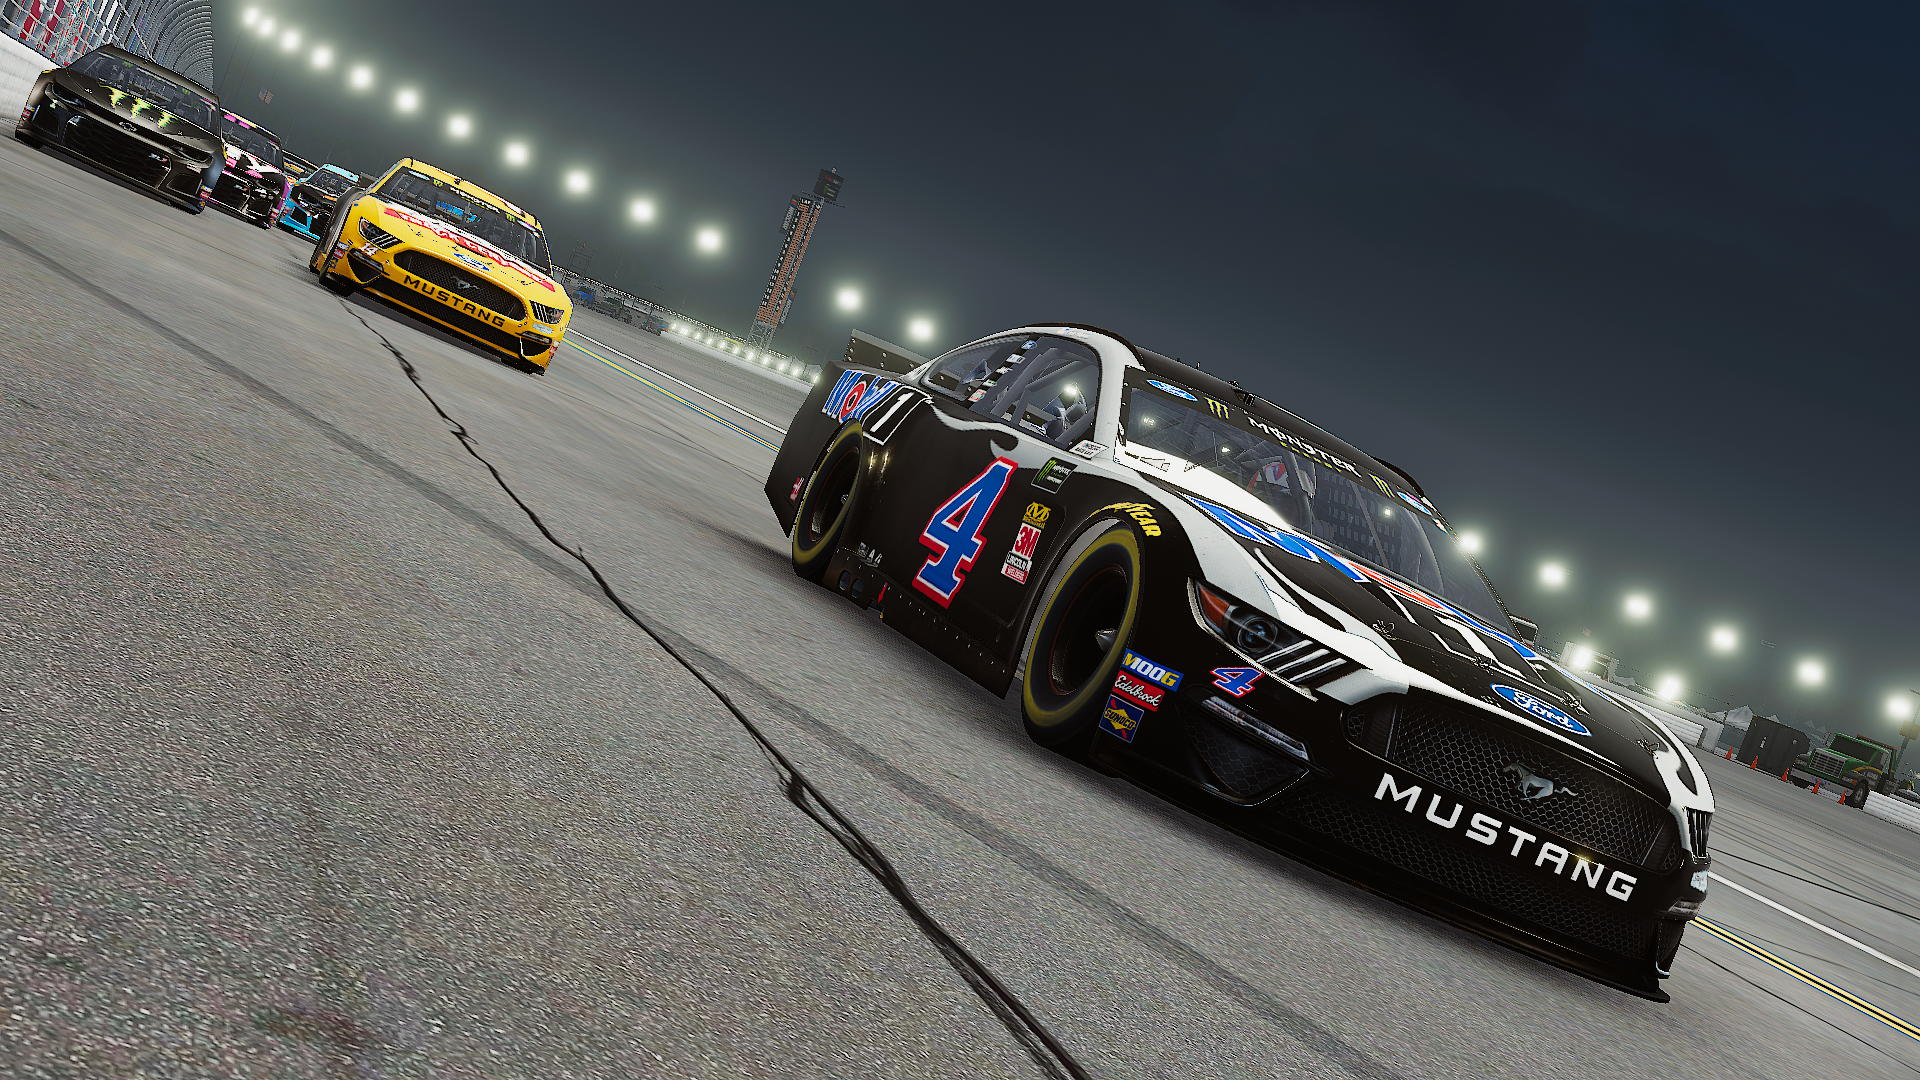 NASCAR Heat 4 returns to answer more fans' requests in